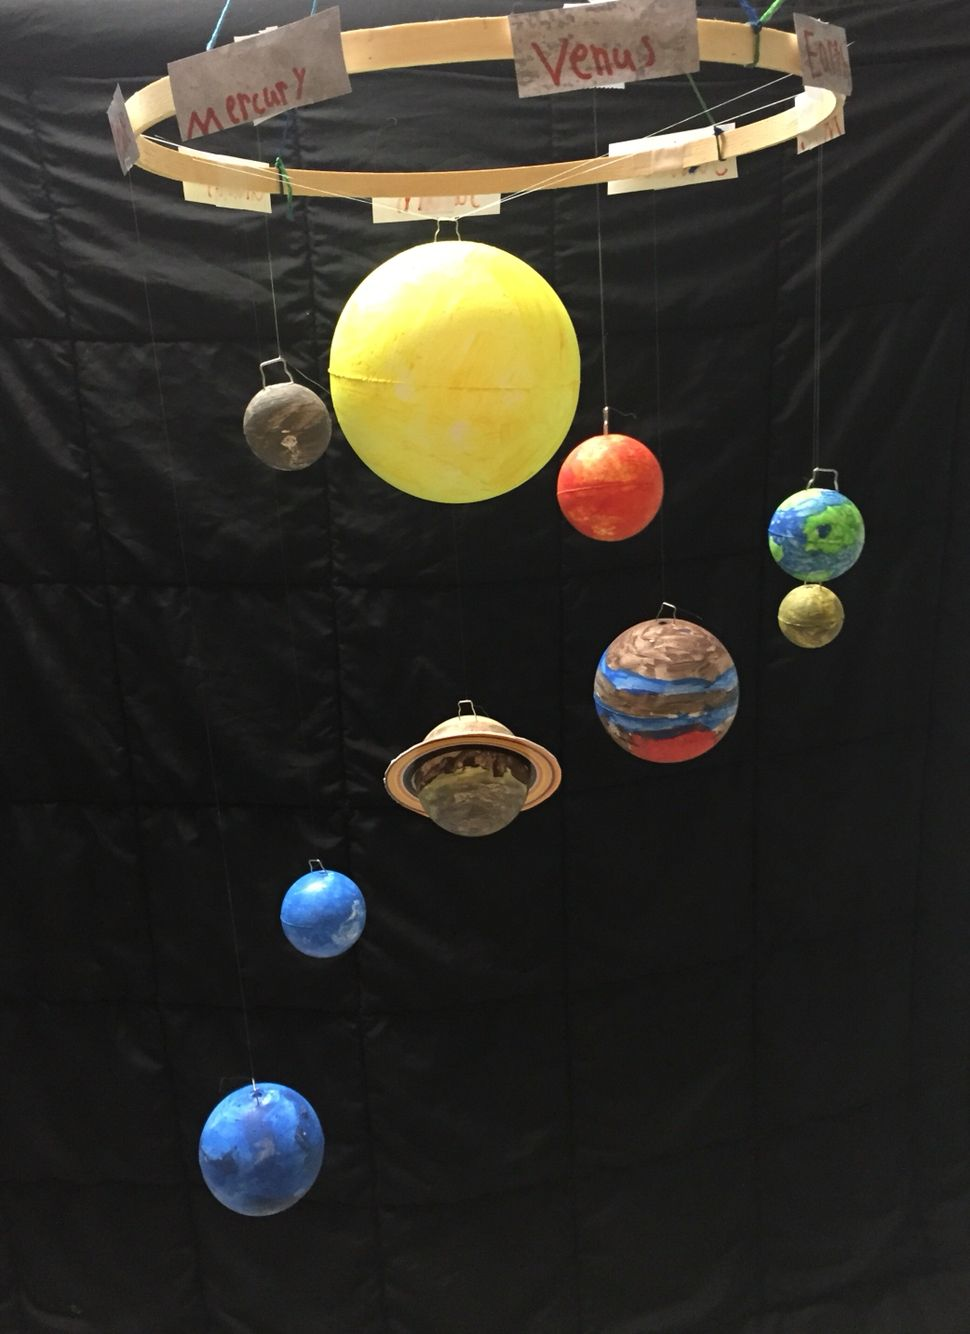 Solar system hanging model. Started with Hobby Lobby 8.99